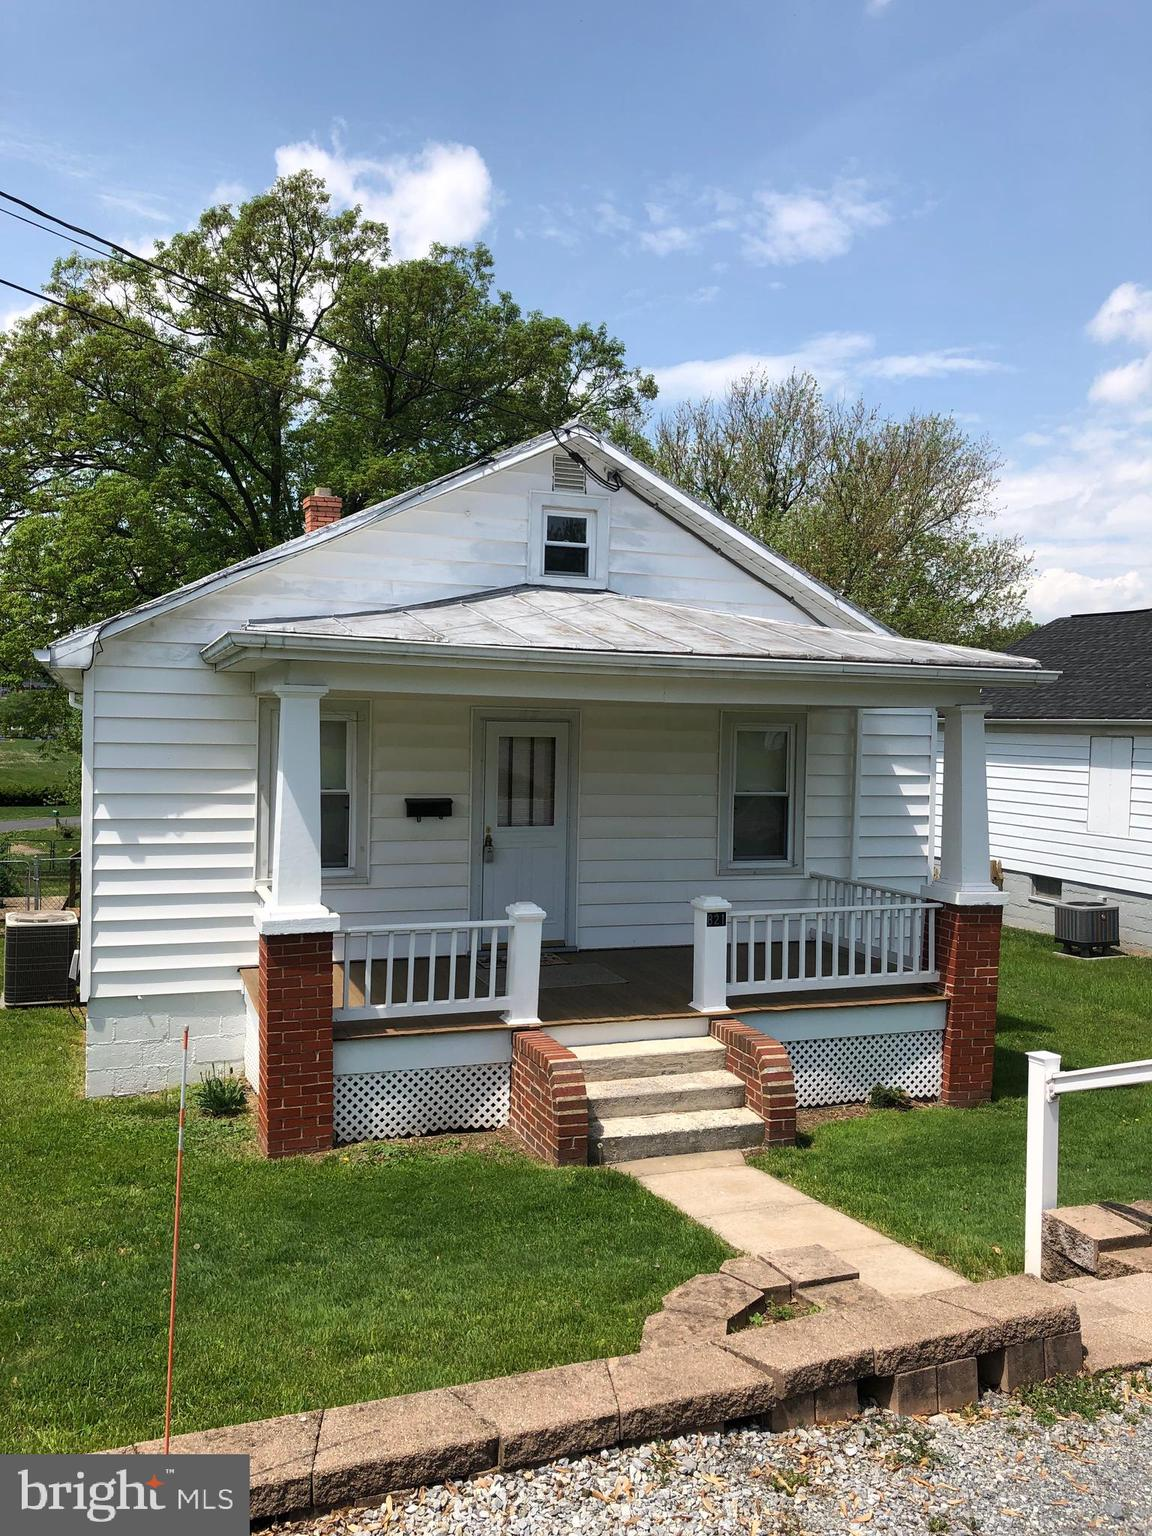 Come see this 1955 Craftsman style home that has been well maintained with nostalgic charm . This ho